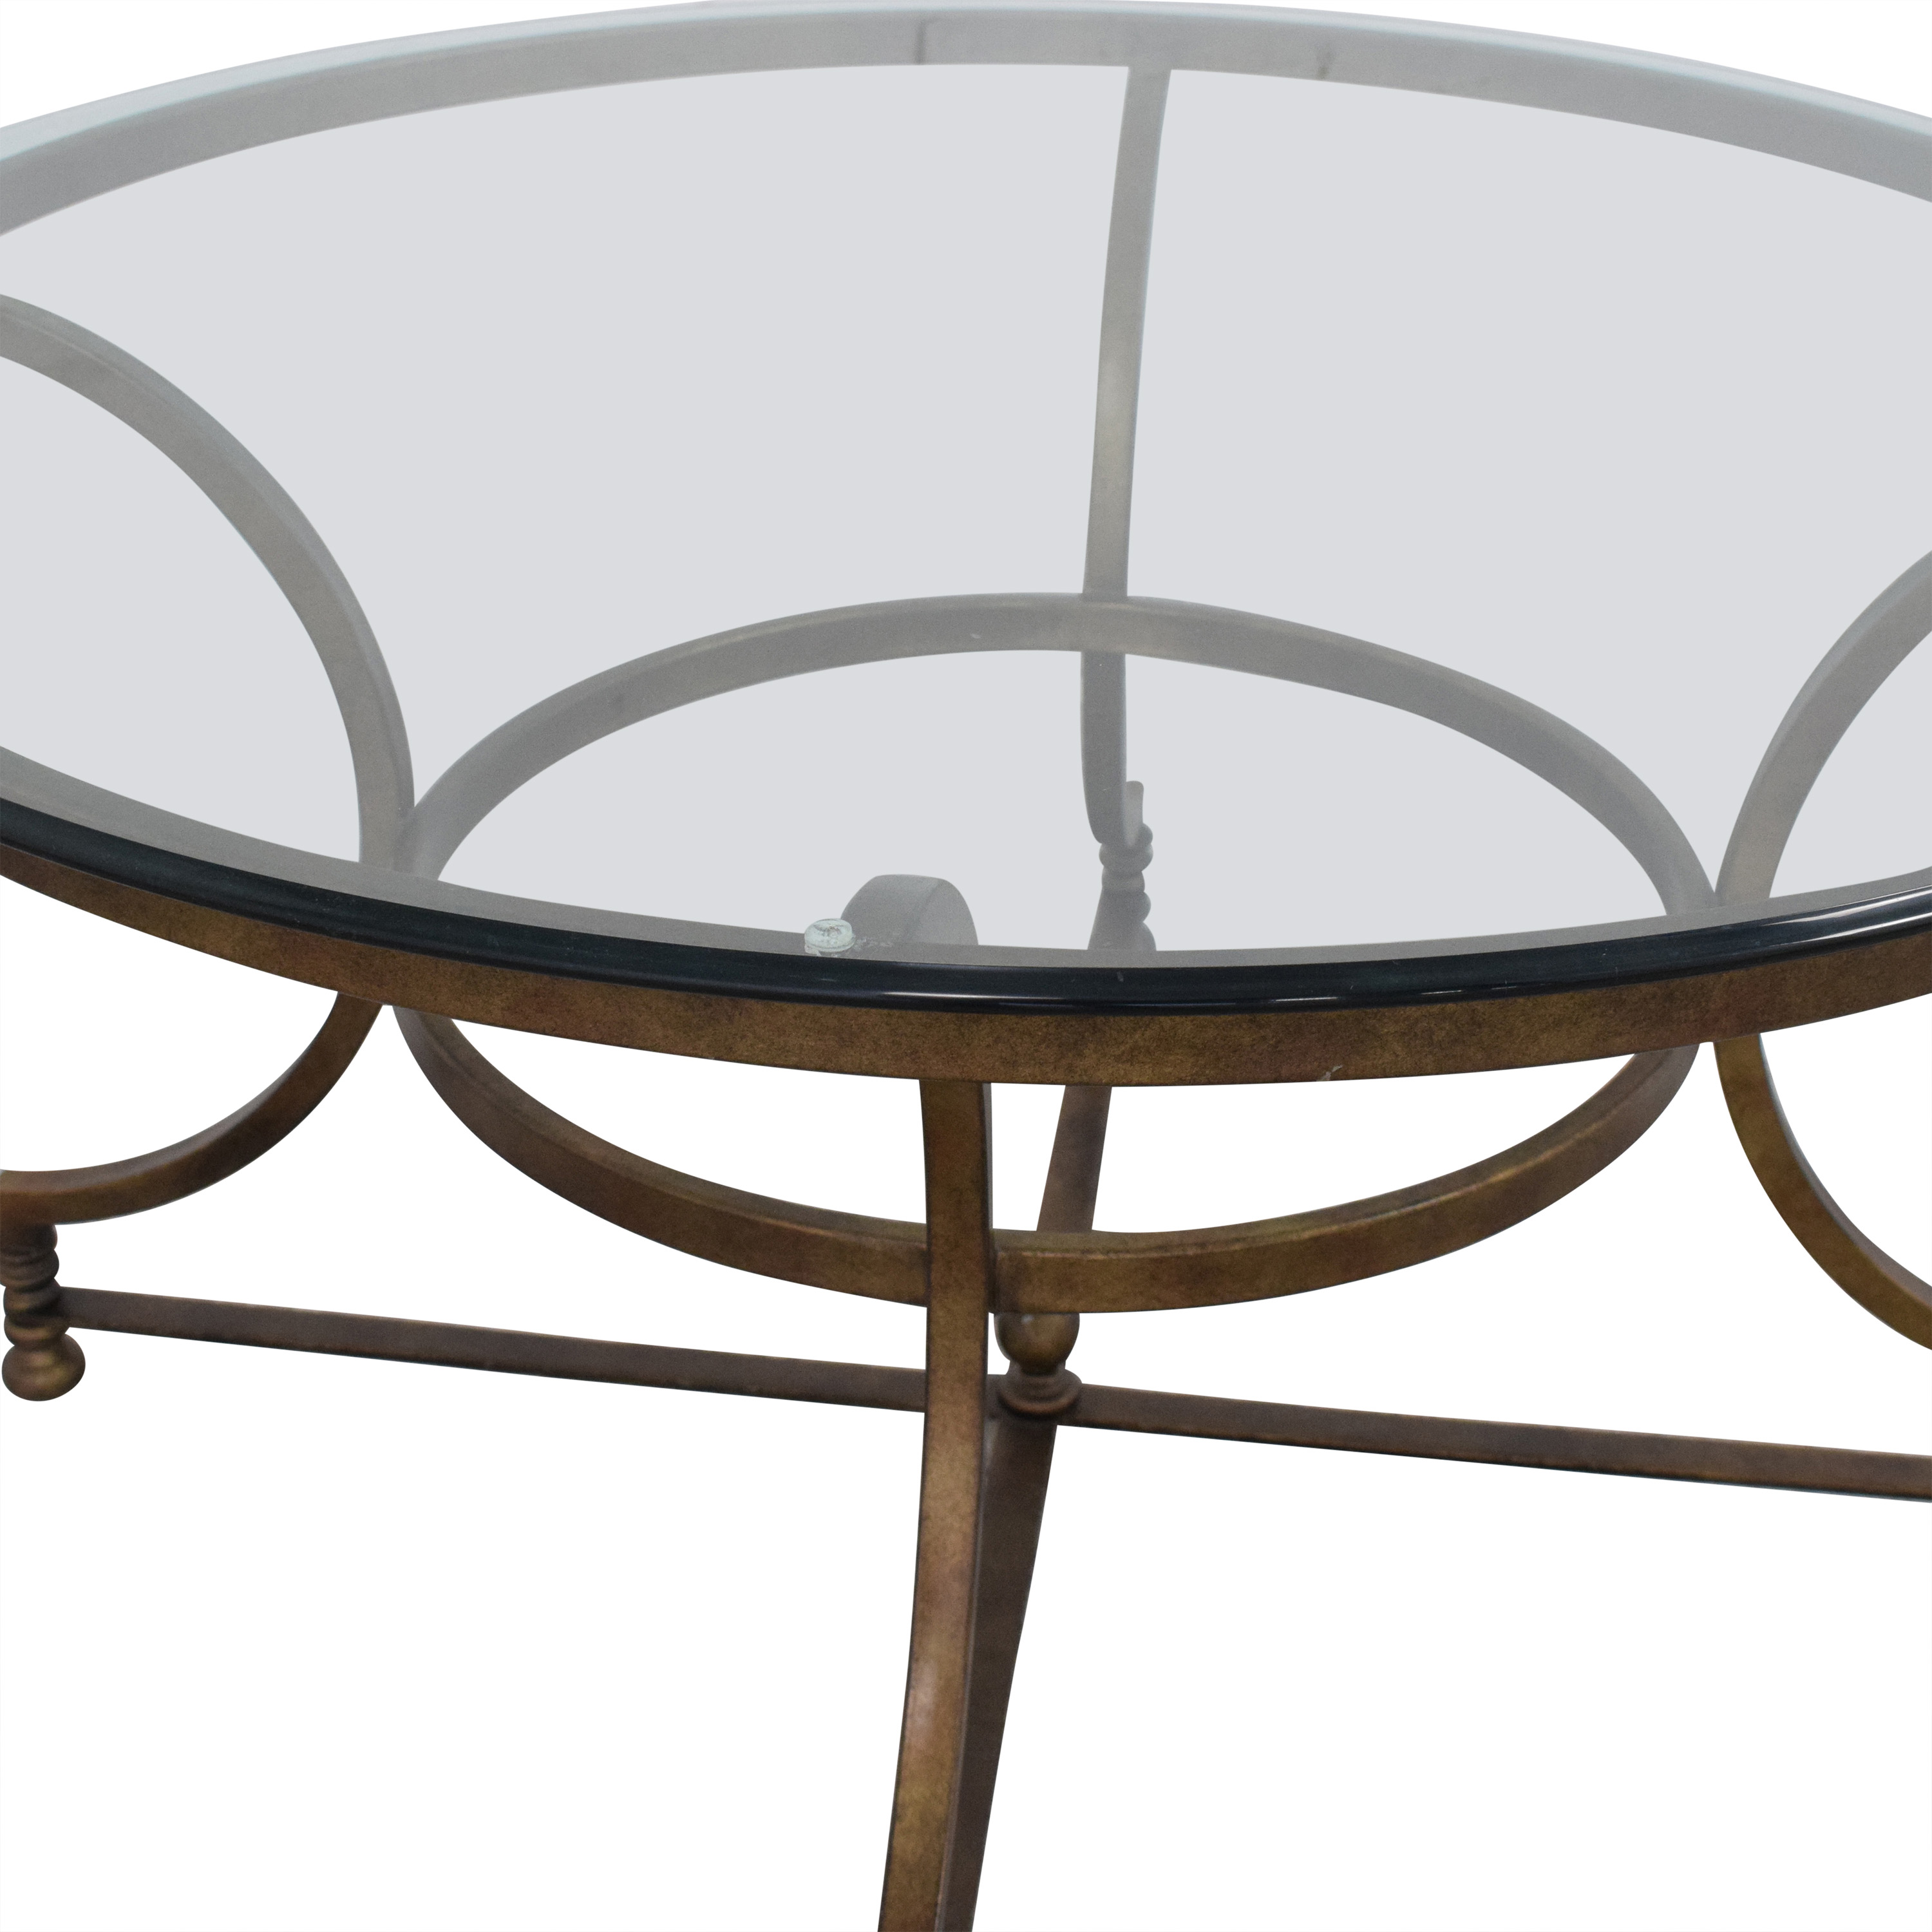 Thomasville Round Glass Coffee Table nj